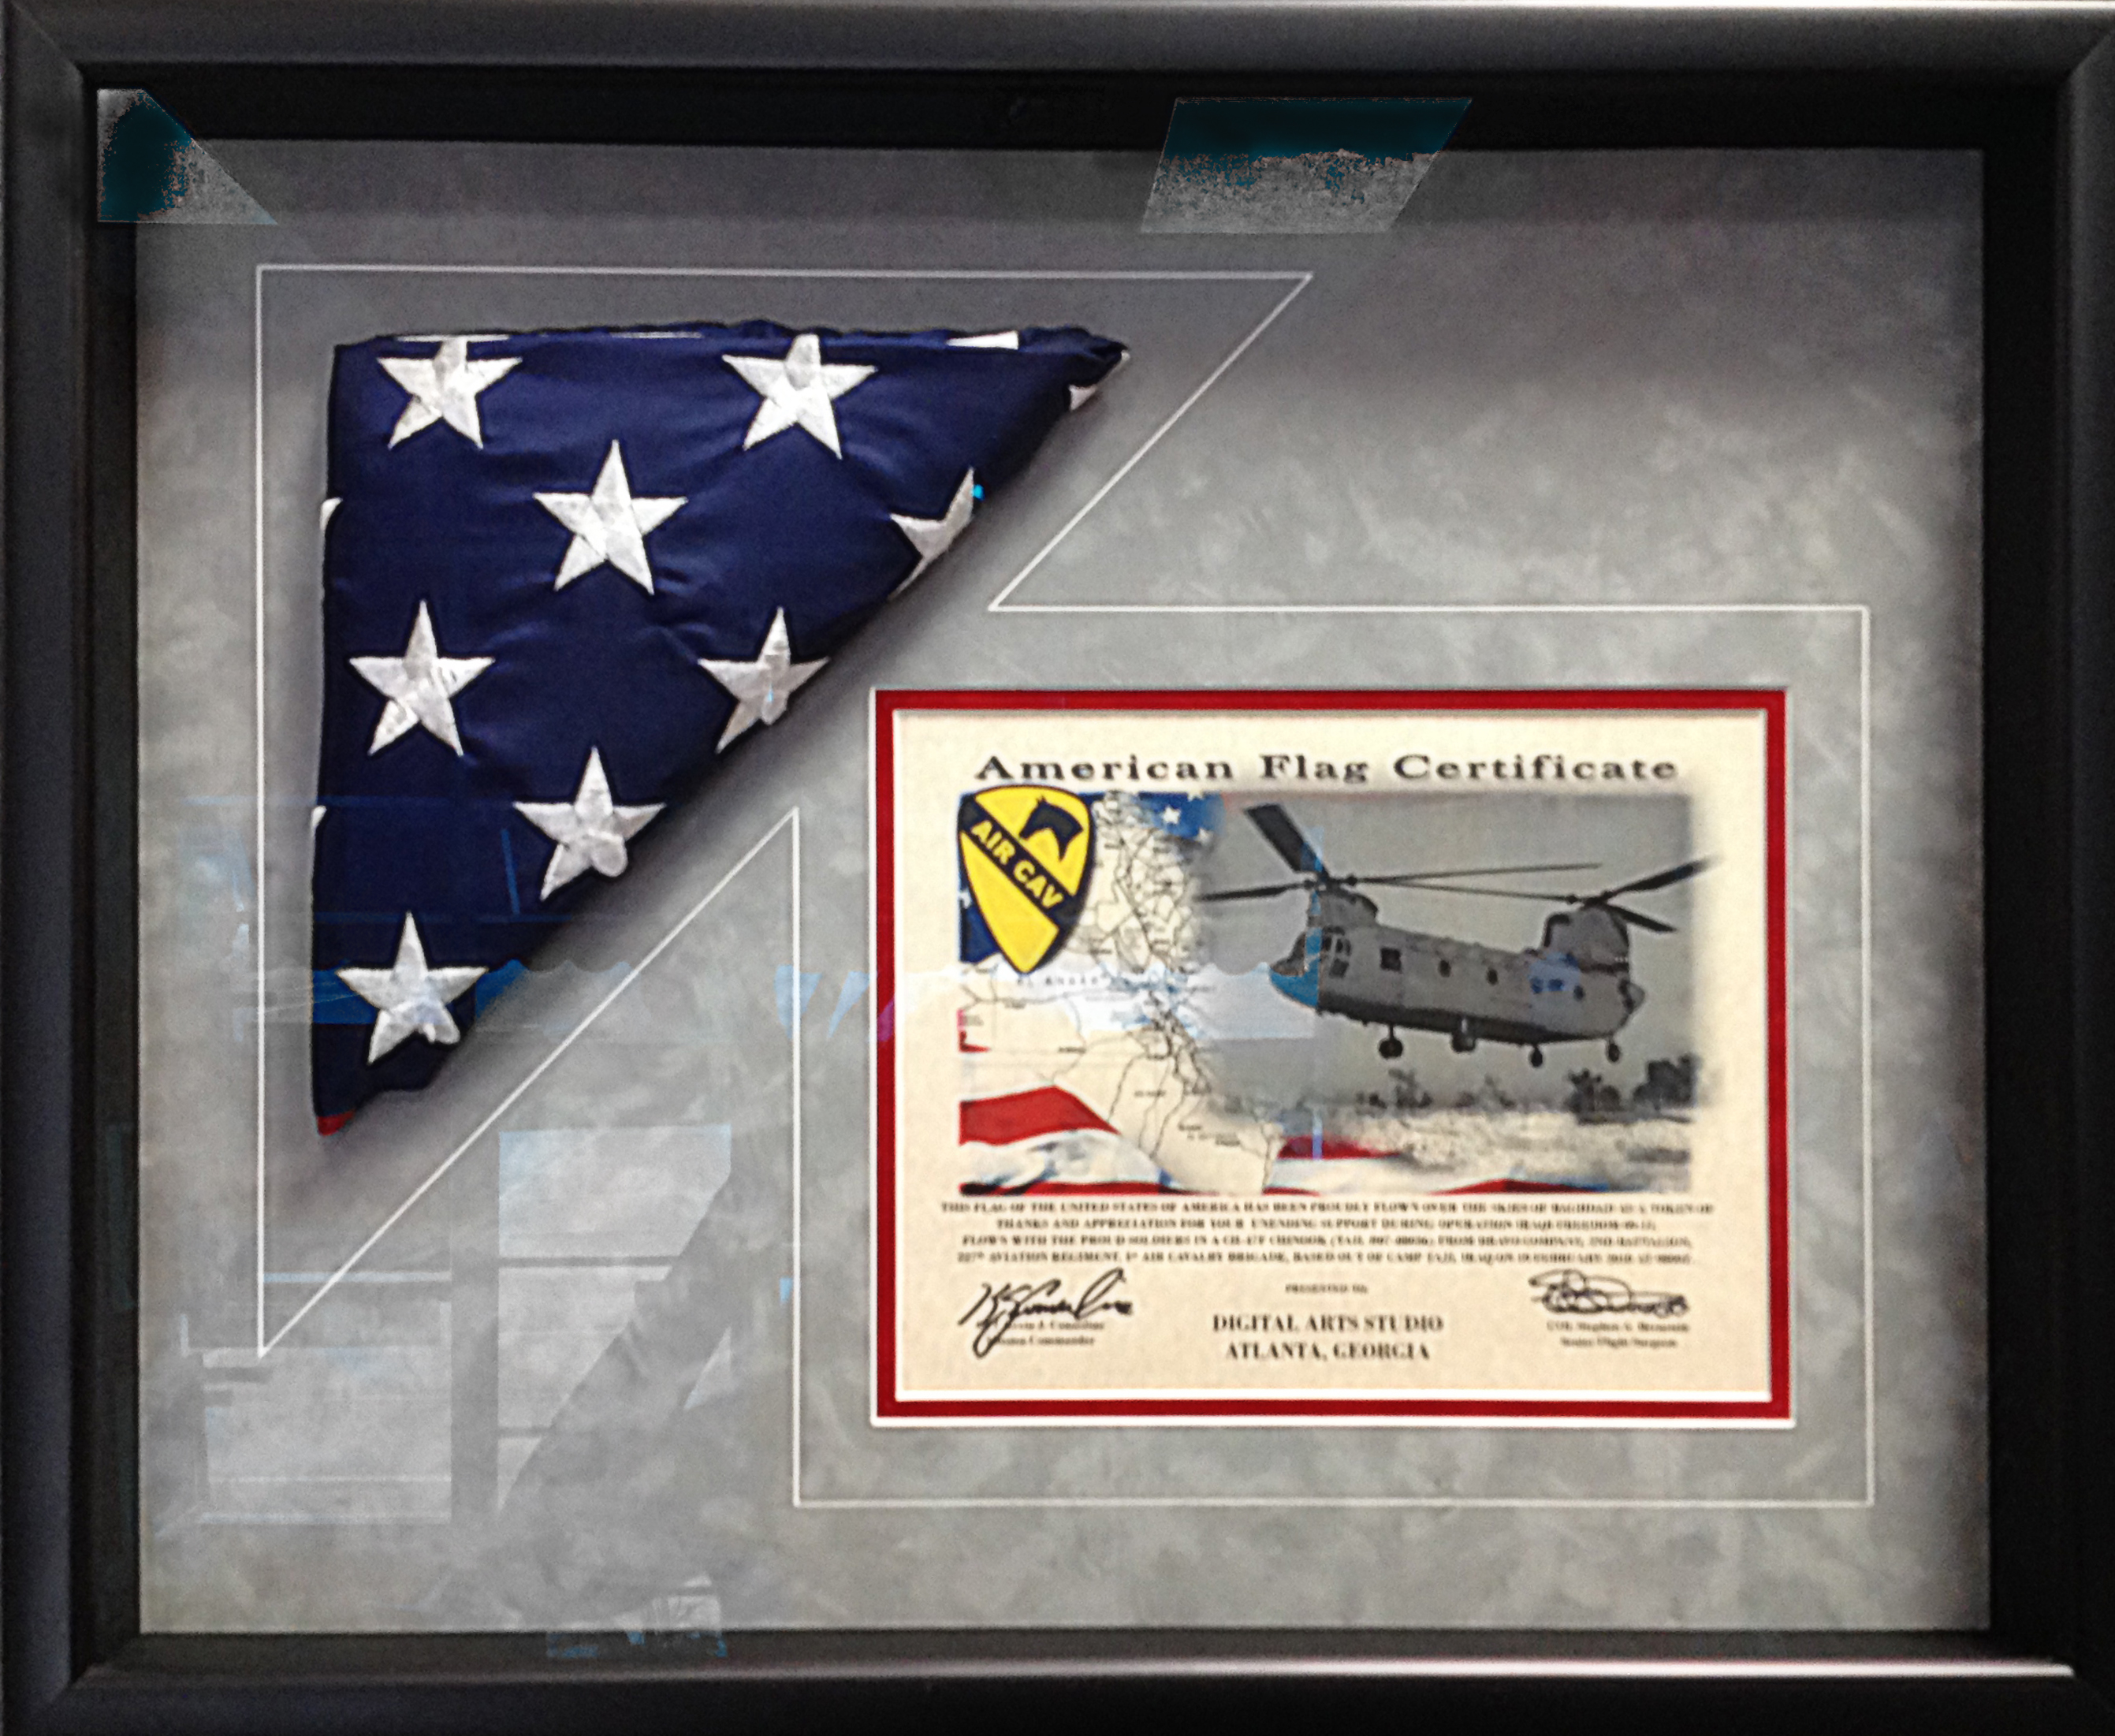 Us Flag And Certificate Frame - Best Design Sertificate 2018